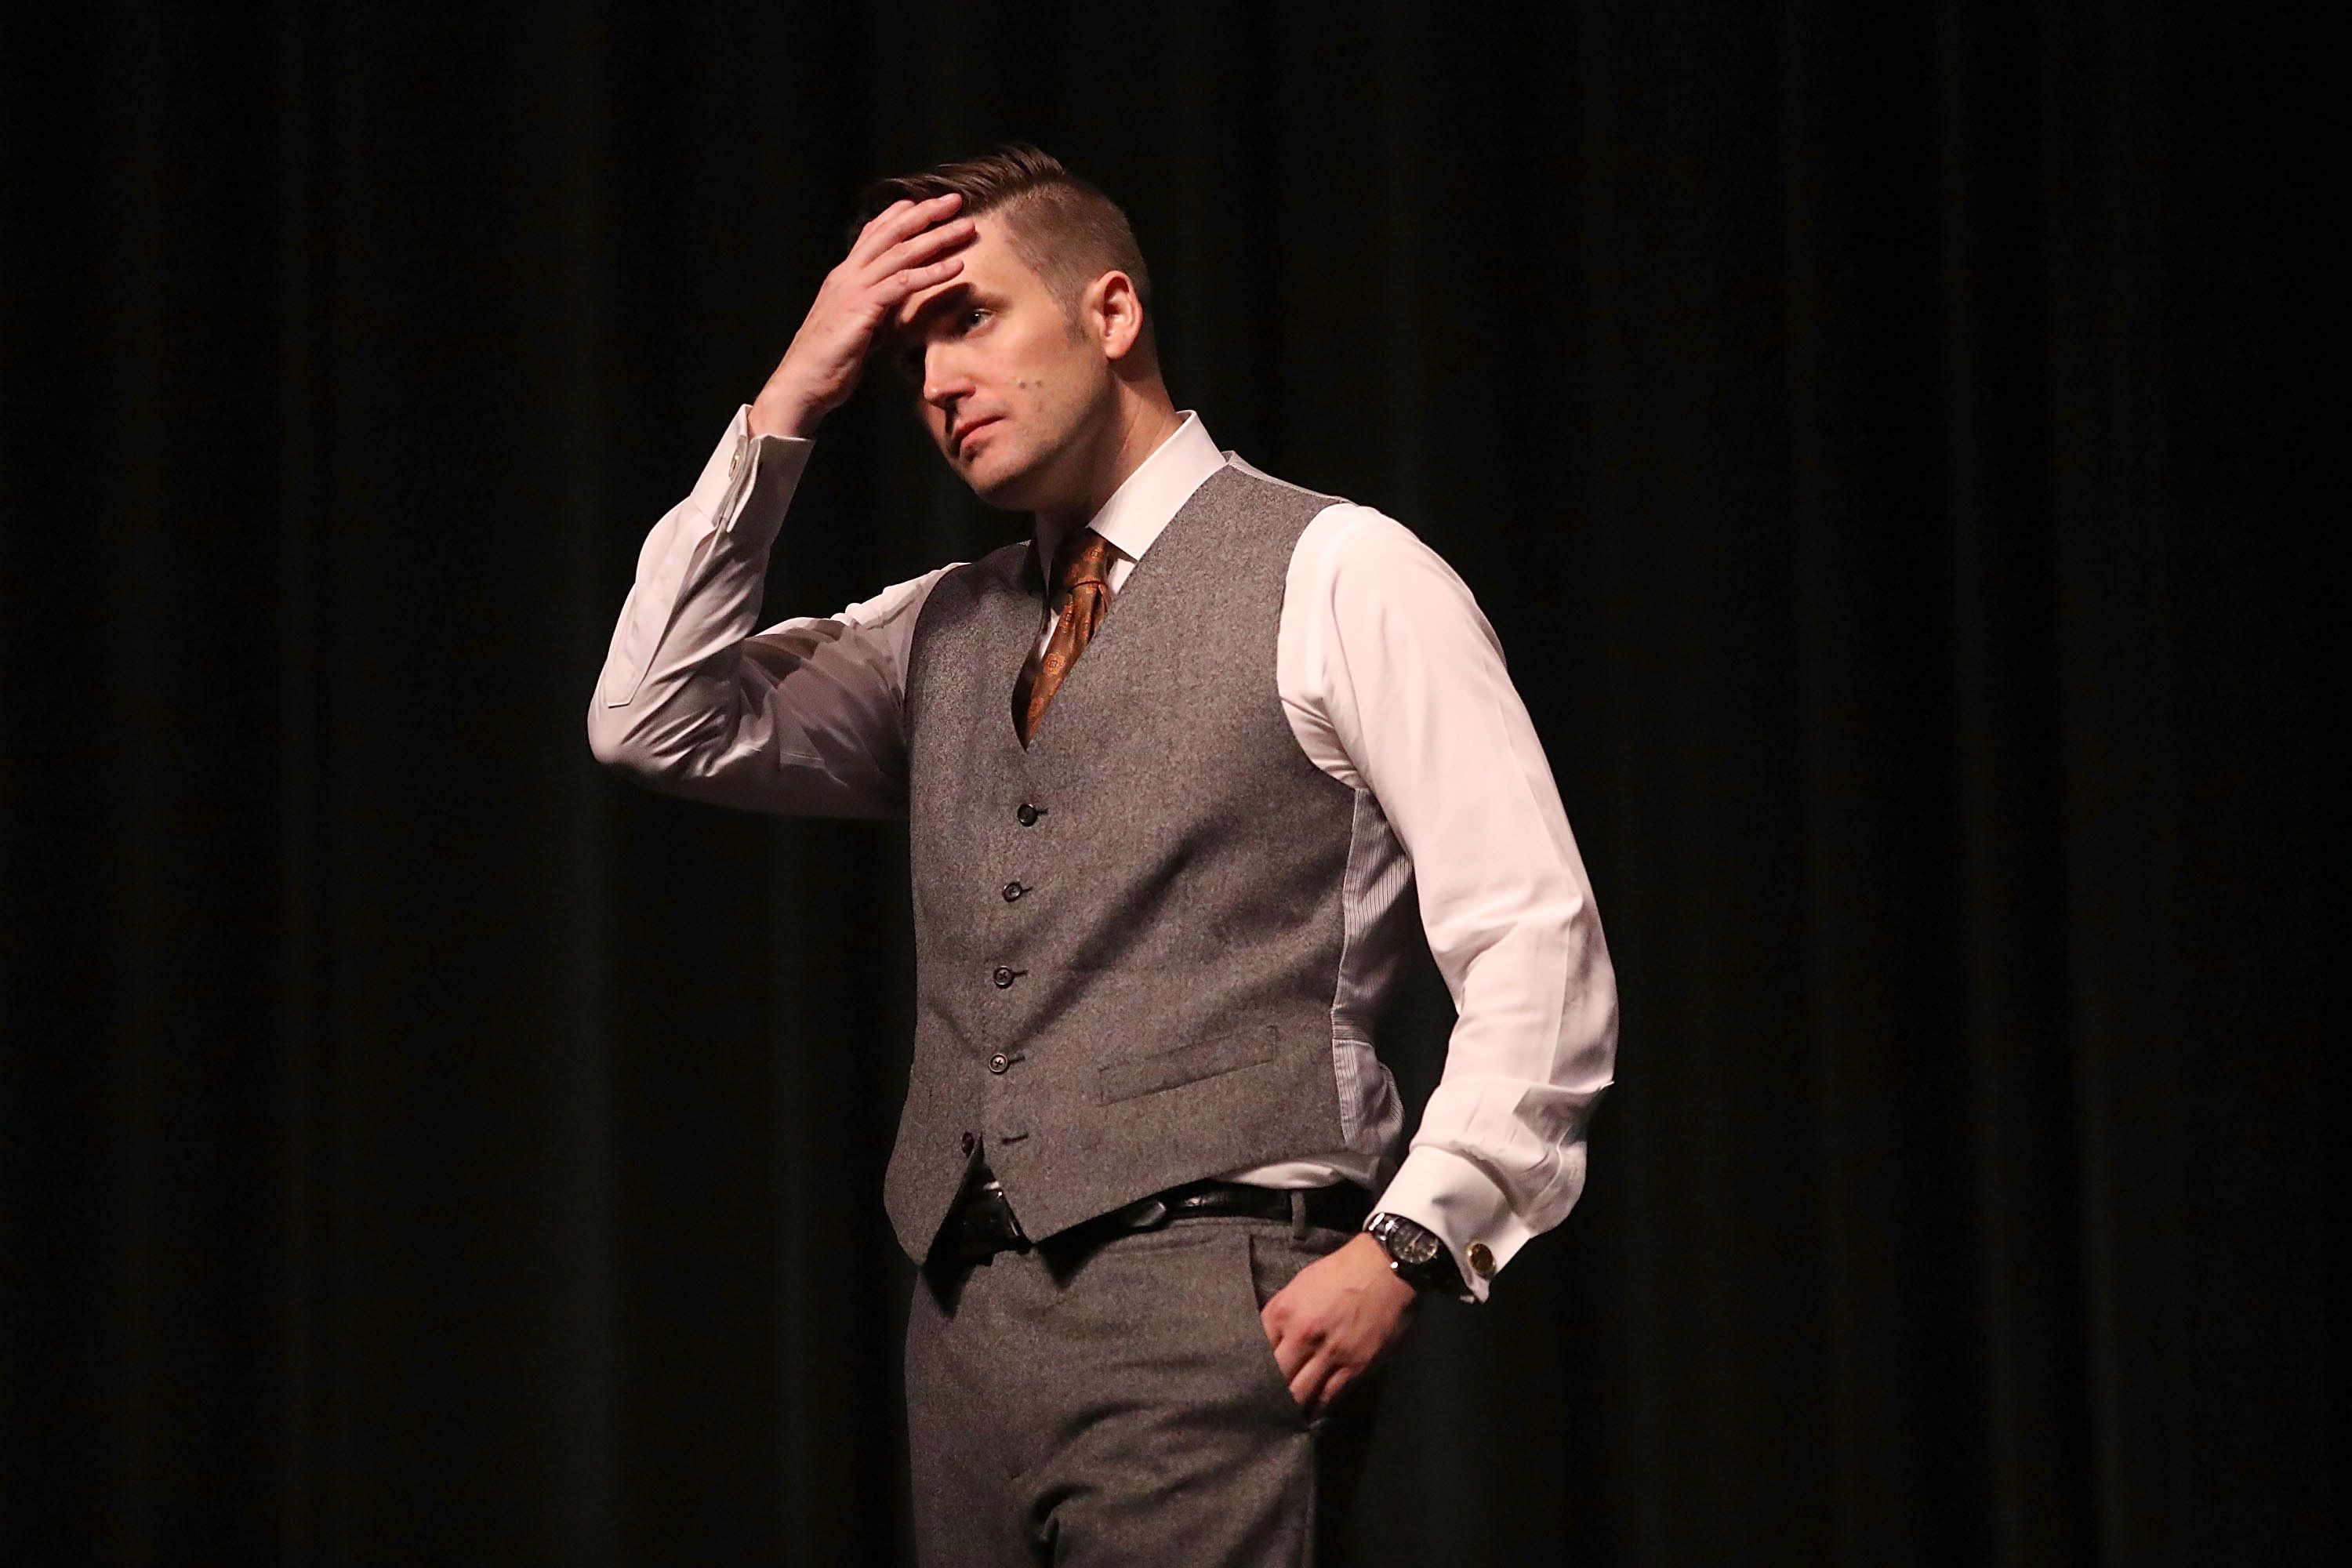 Richard Spencer at the University of Florida in Gainesville.